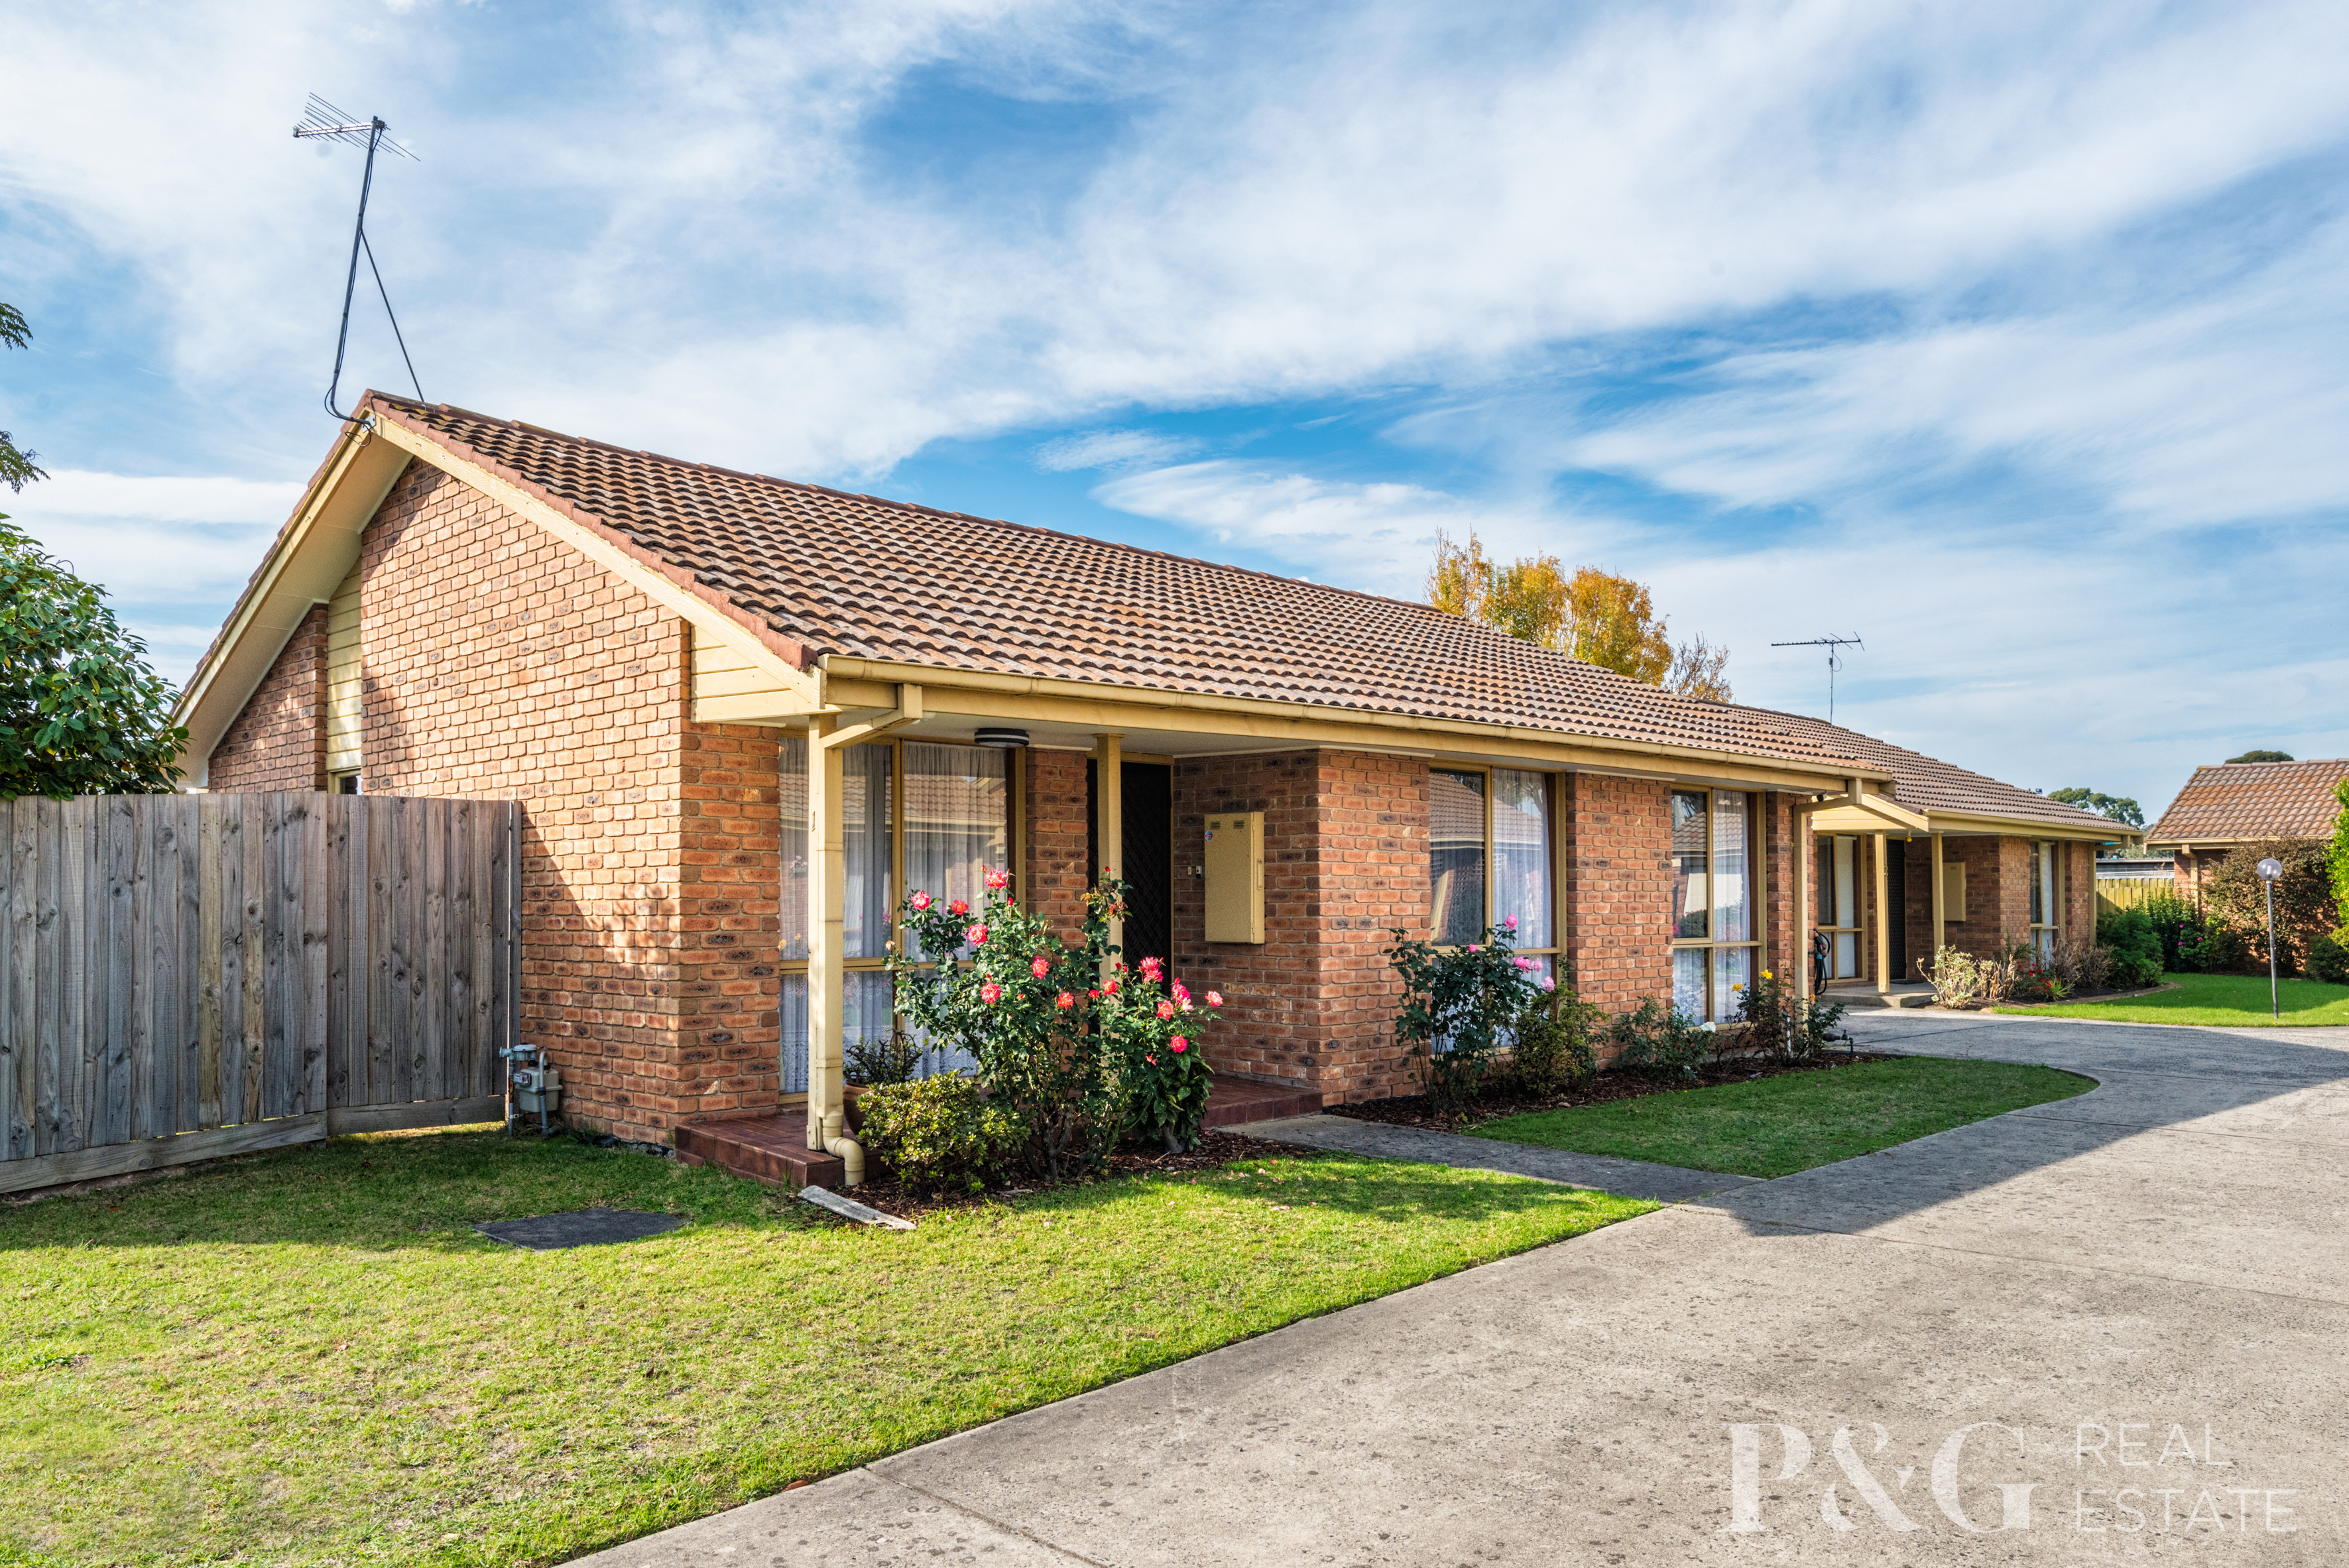 1/27 Beaconsfield Avenue, BEACONSFIELD, VIC, 3807 - Image